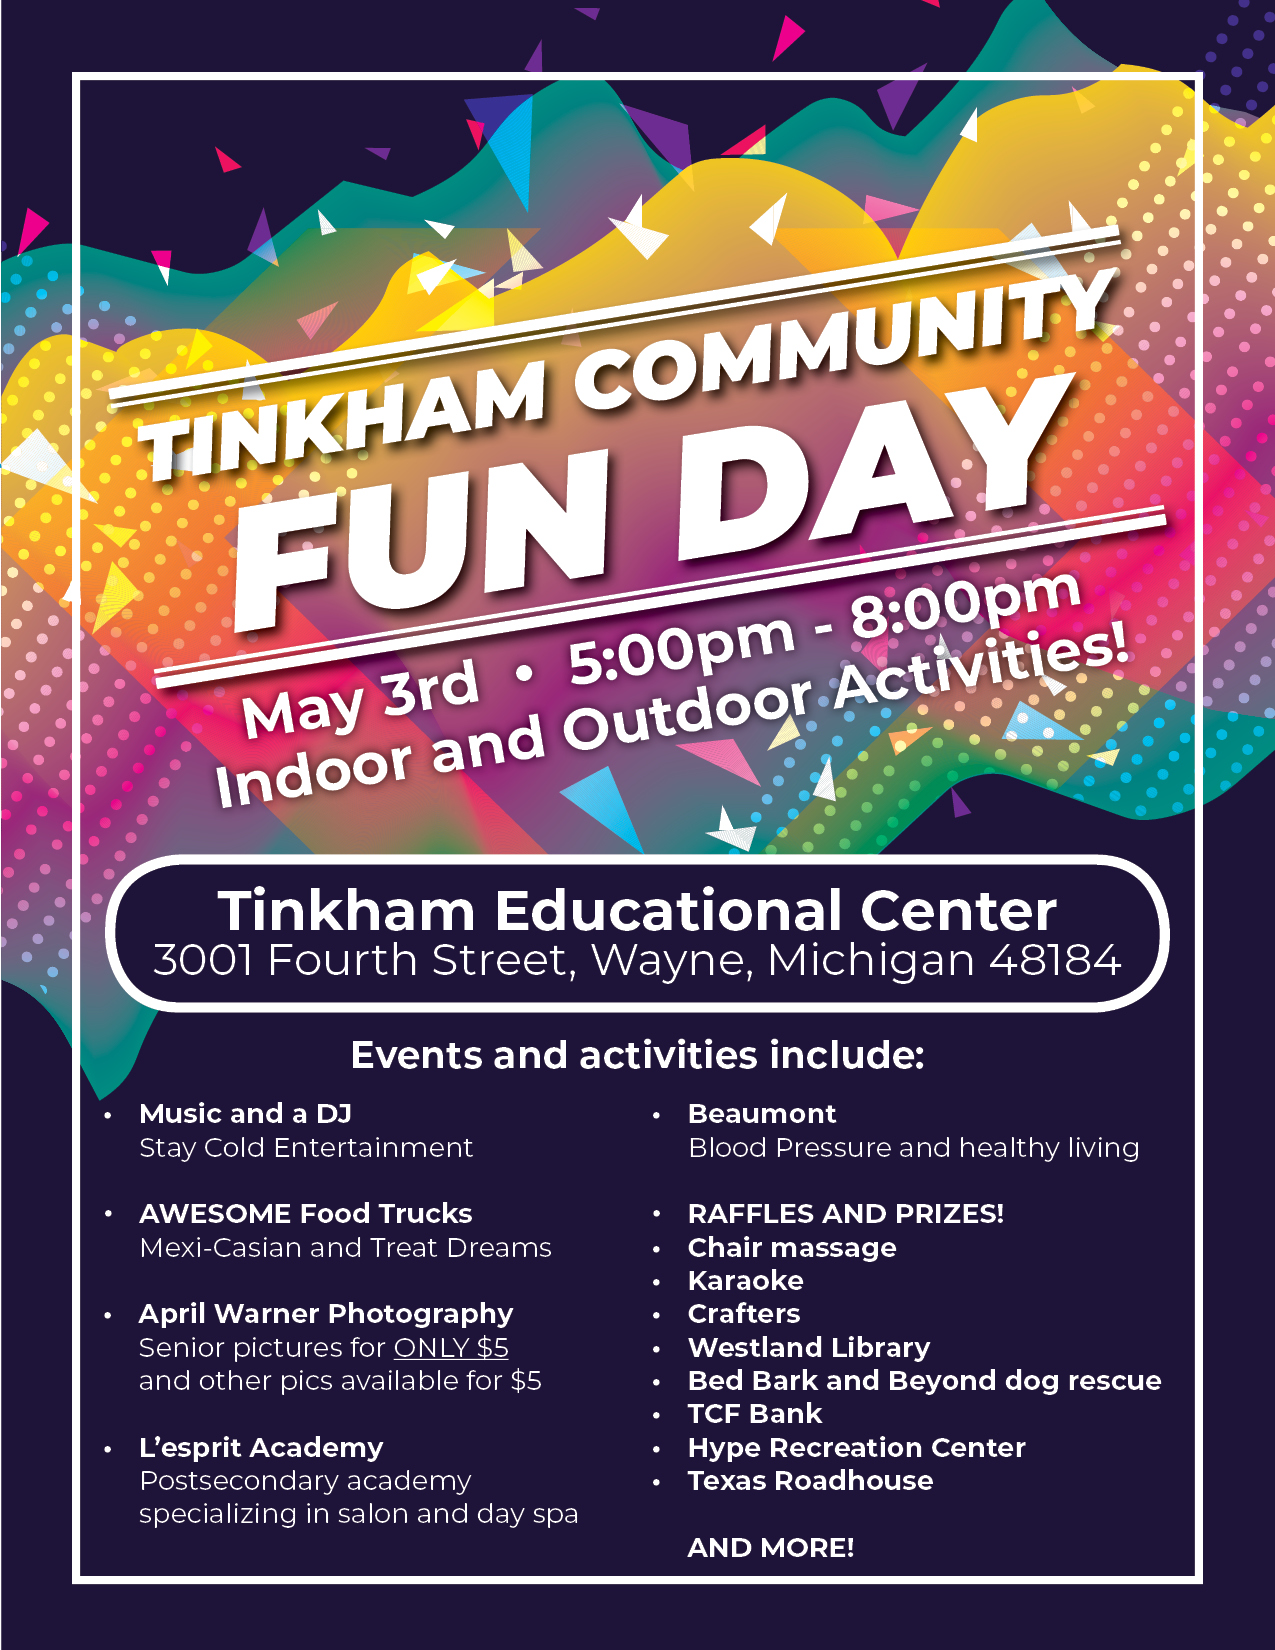 Tinkham Community Fun Day Flyer